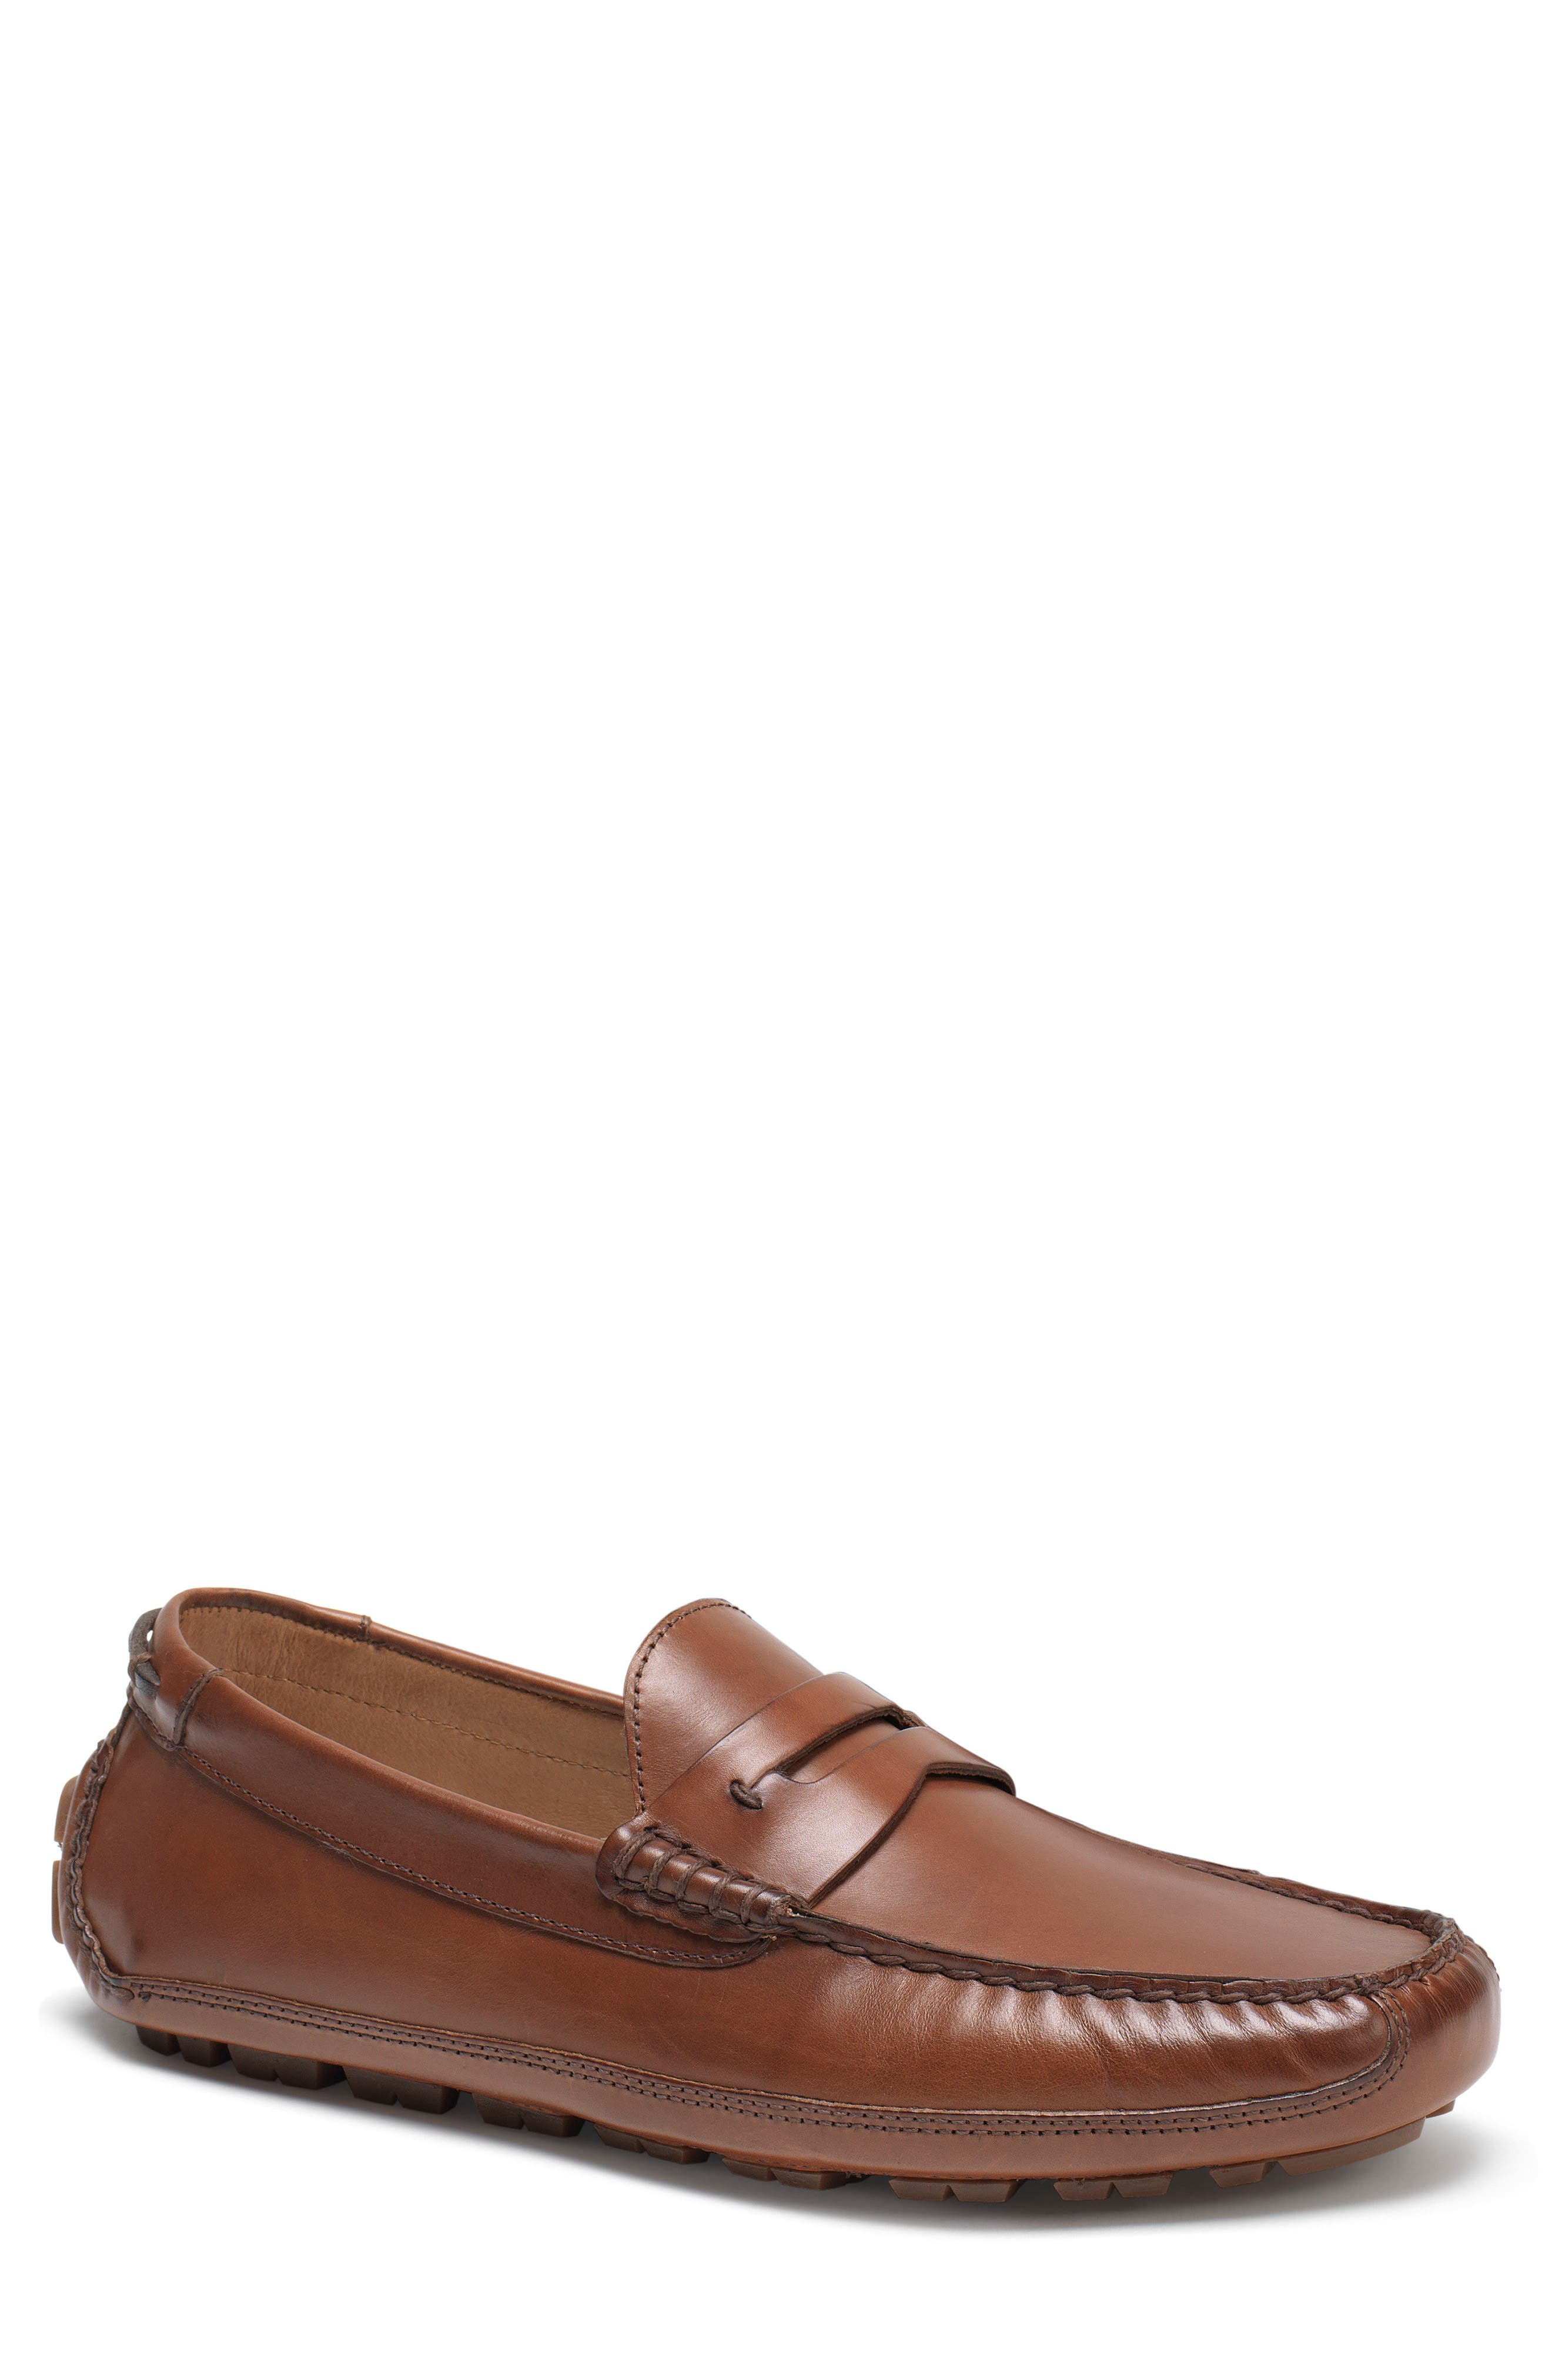 Main Image - Trask Dawson Water Resistant Driving Loafer (Men)